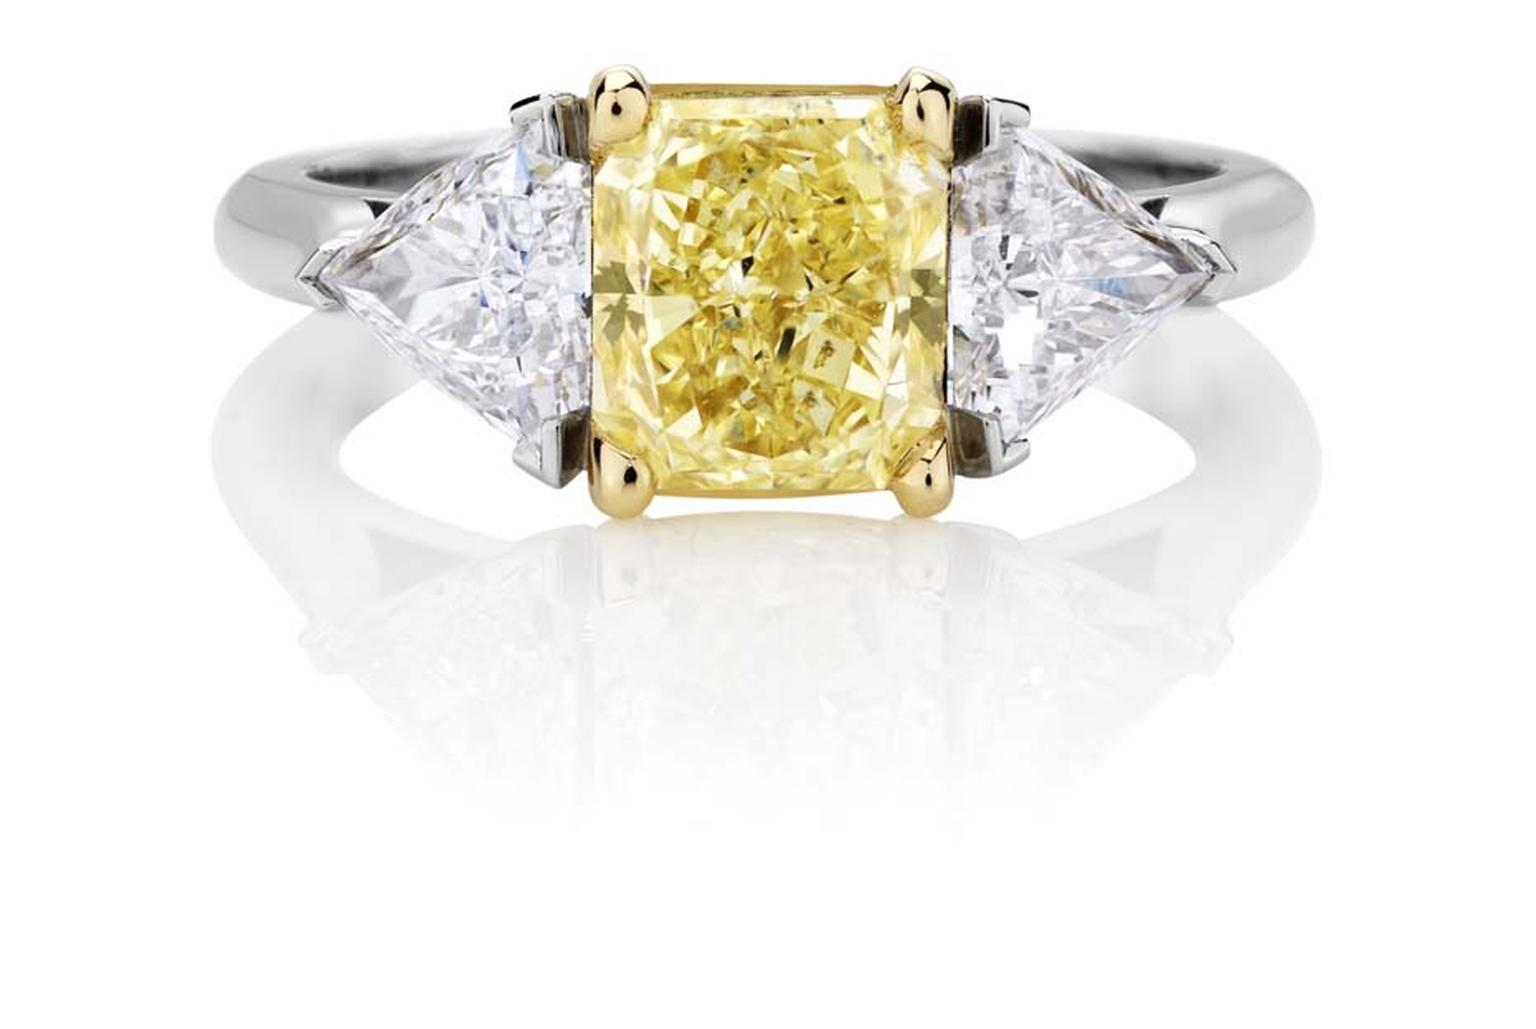 Part of De Beers jewellery's 1888 Master Diamonds collection, a three stone engagement ring set with a 3.93ct vivid yellow diamond flanked by trilliant-cut diamonds.